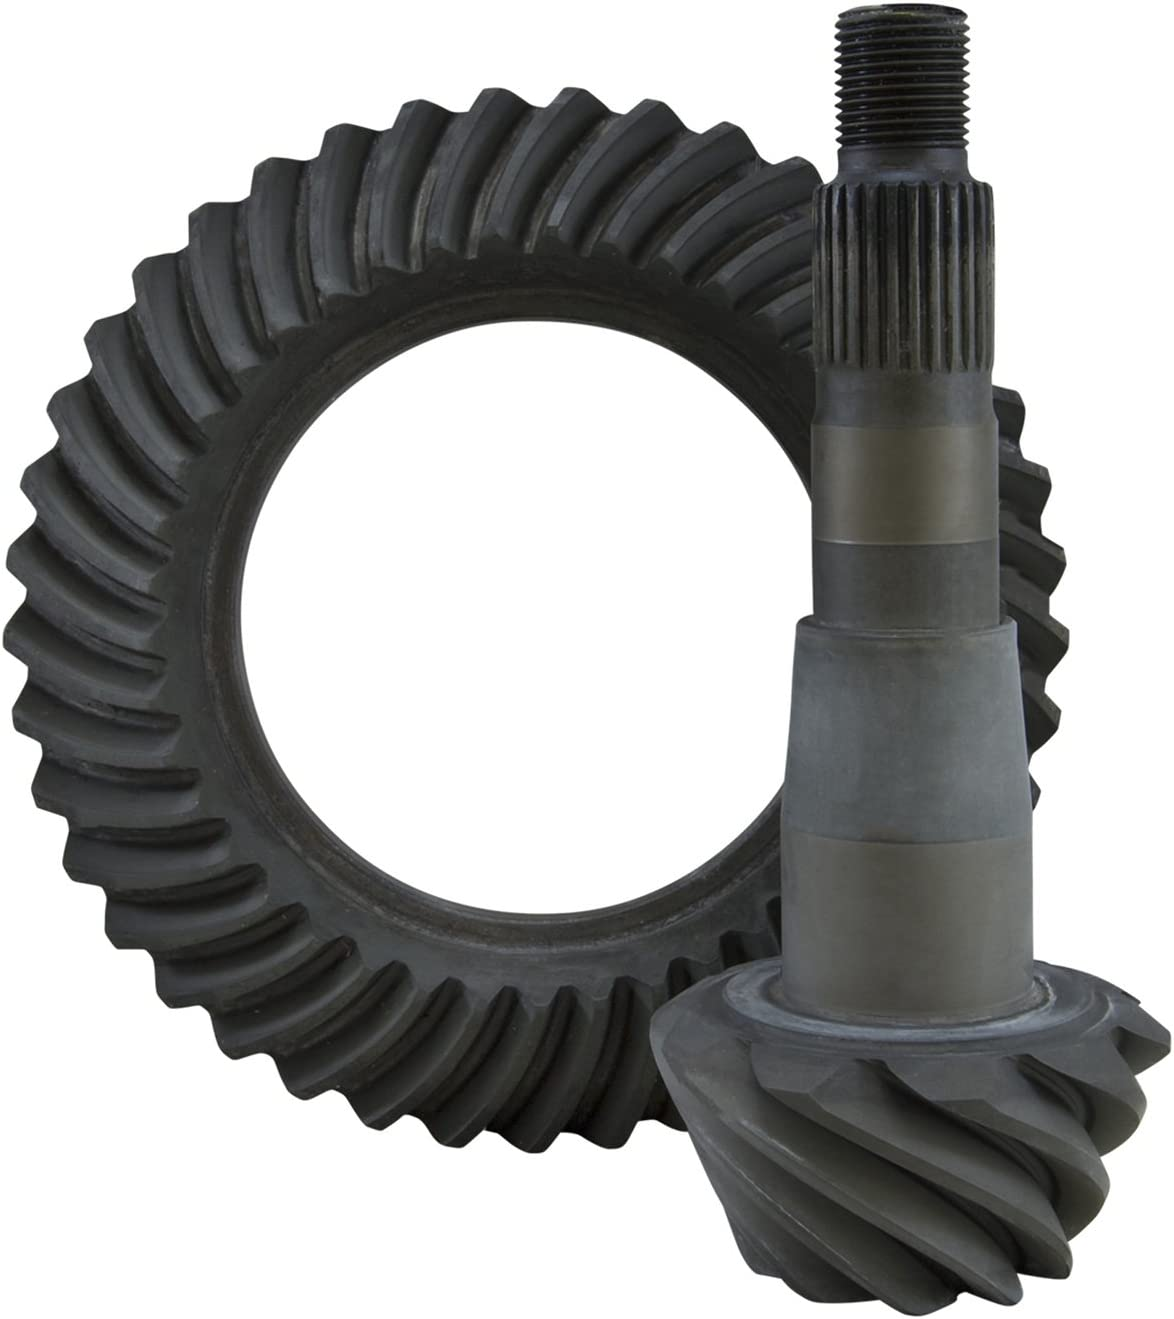 YG GM8.0-373 High Performance Ring and Pinion Gear Set for GM 8 Differential Yukon